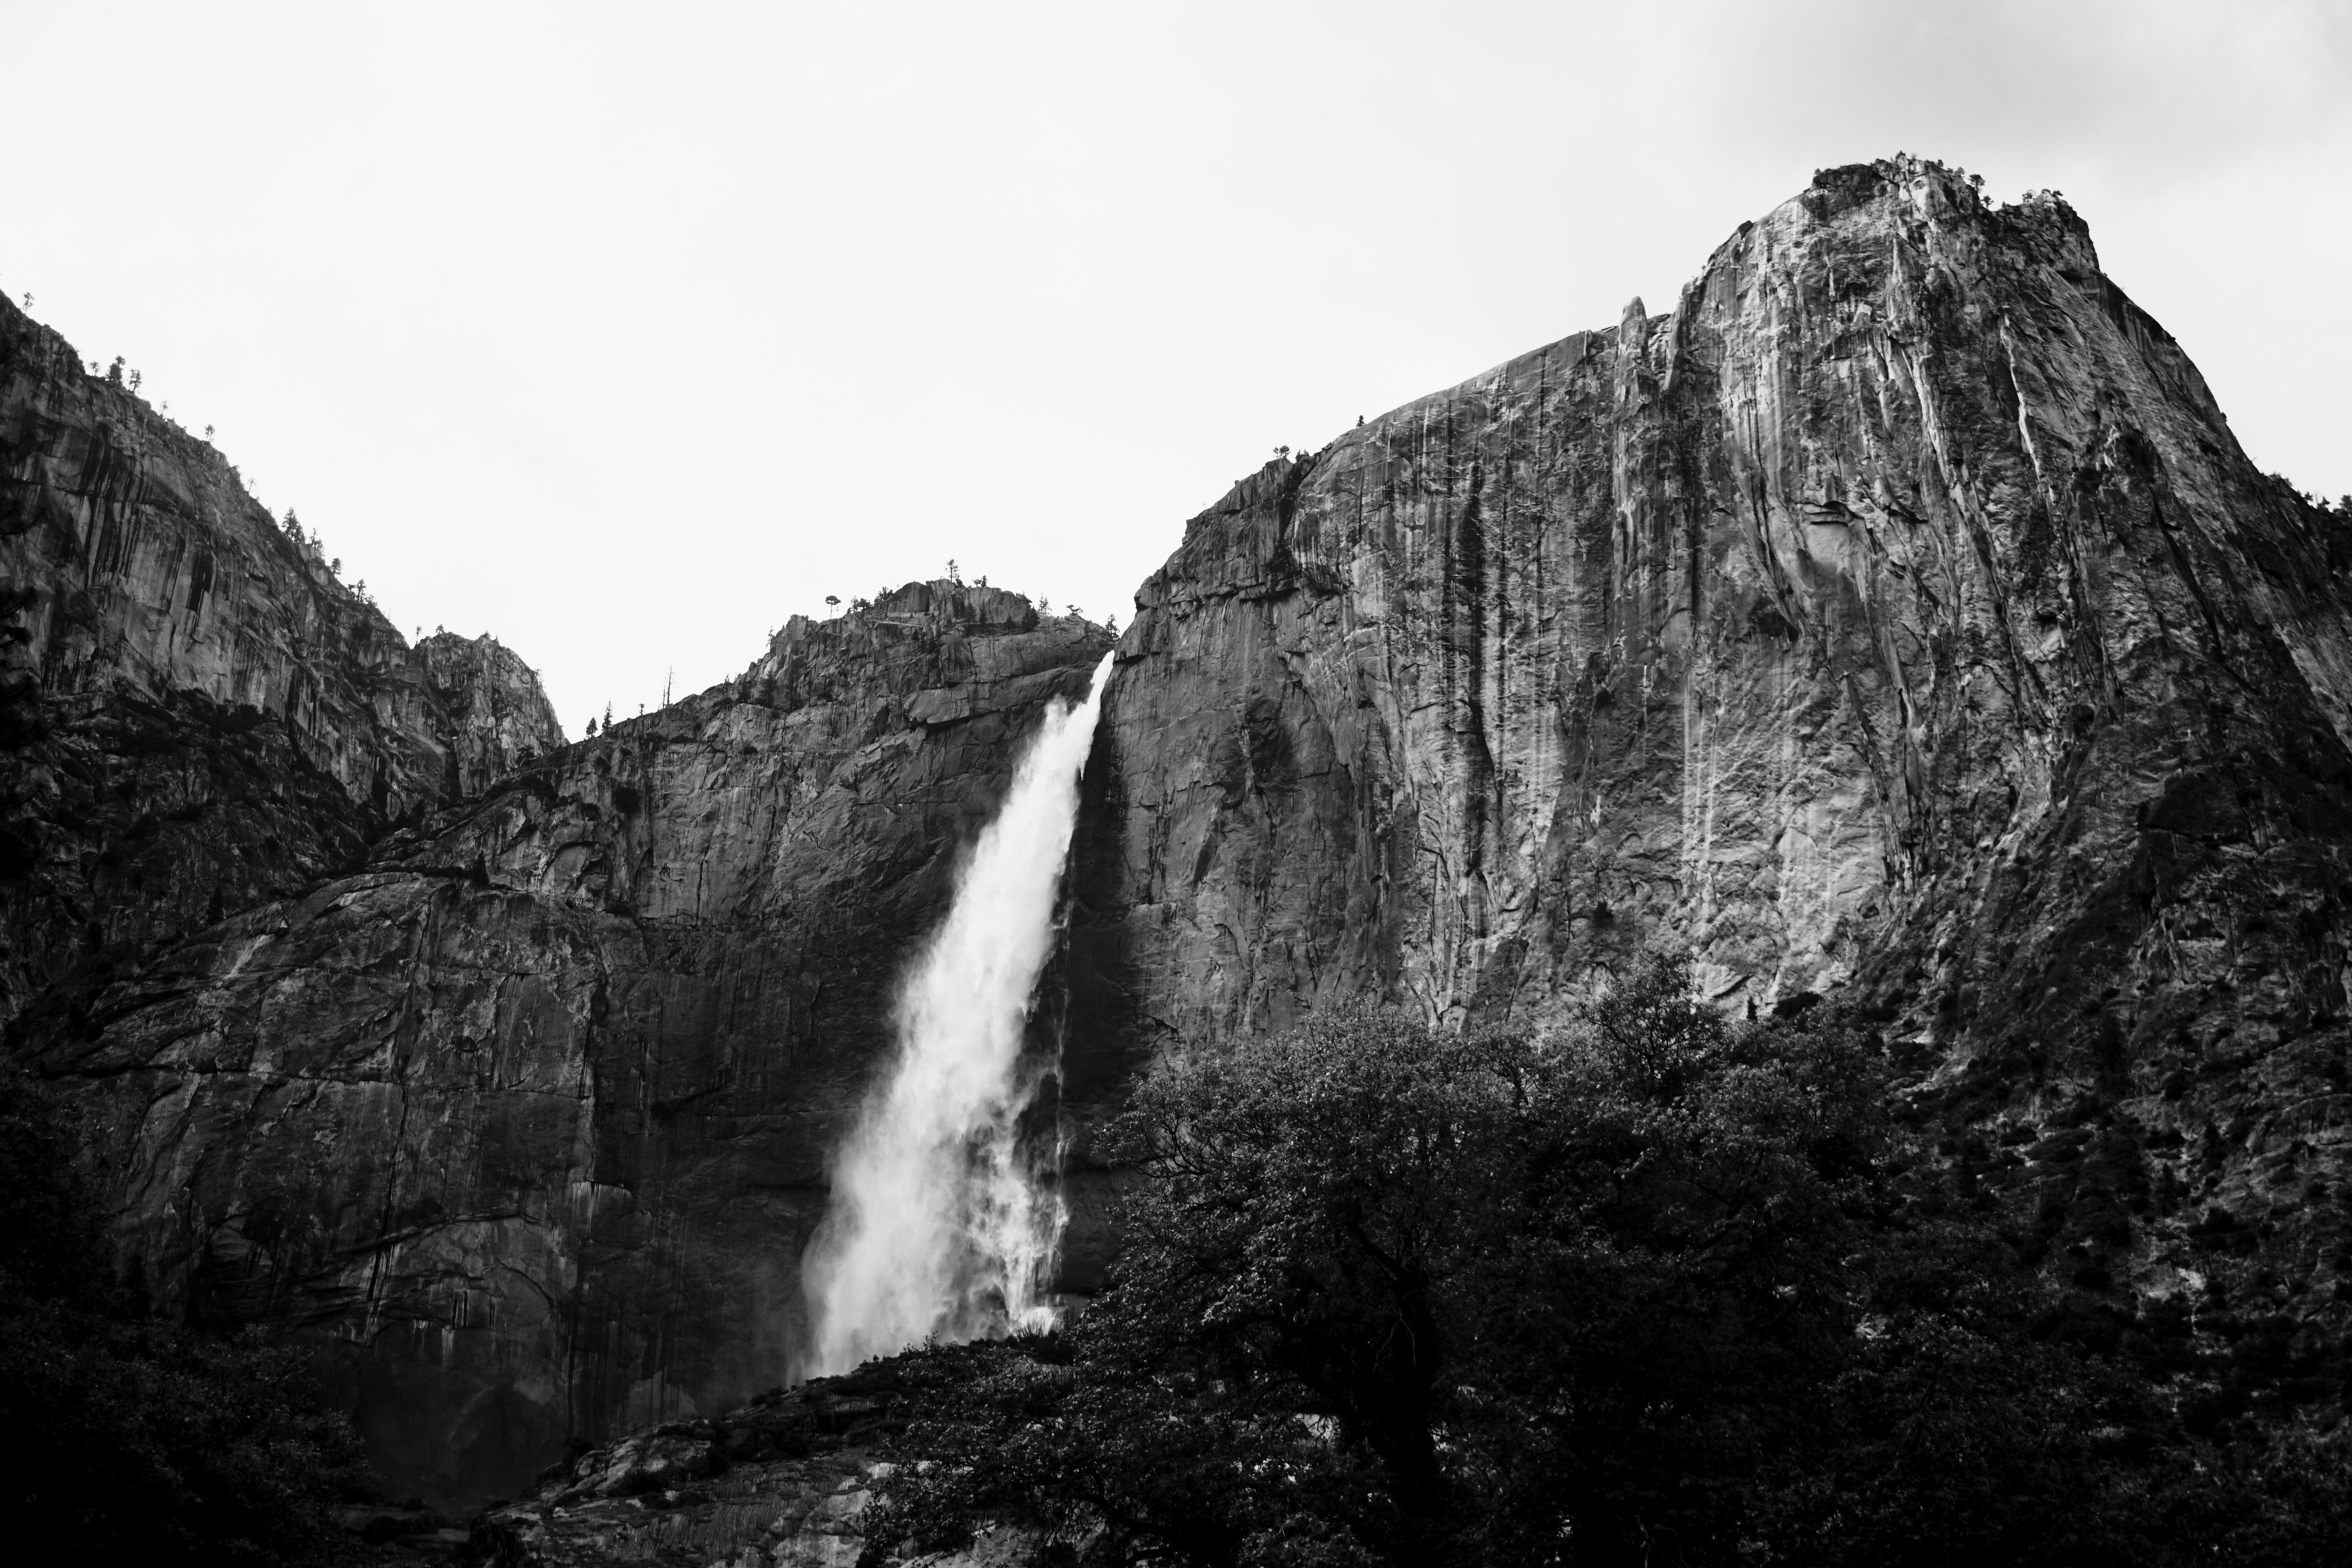 grayscale photography of plunge waterfall at daytime